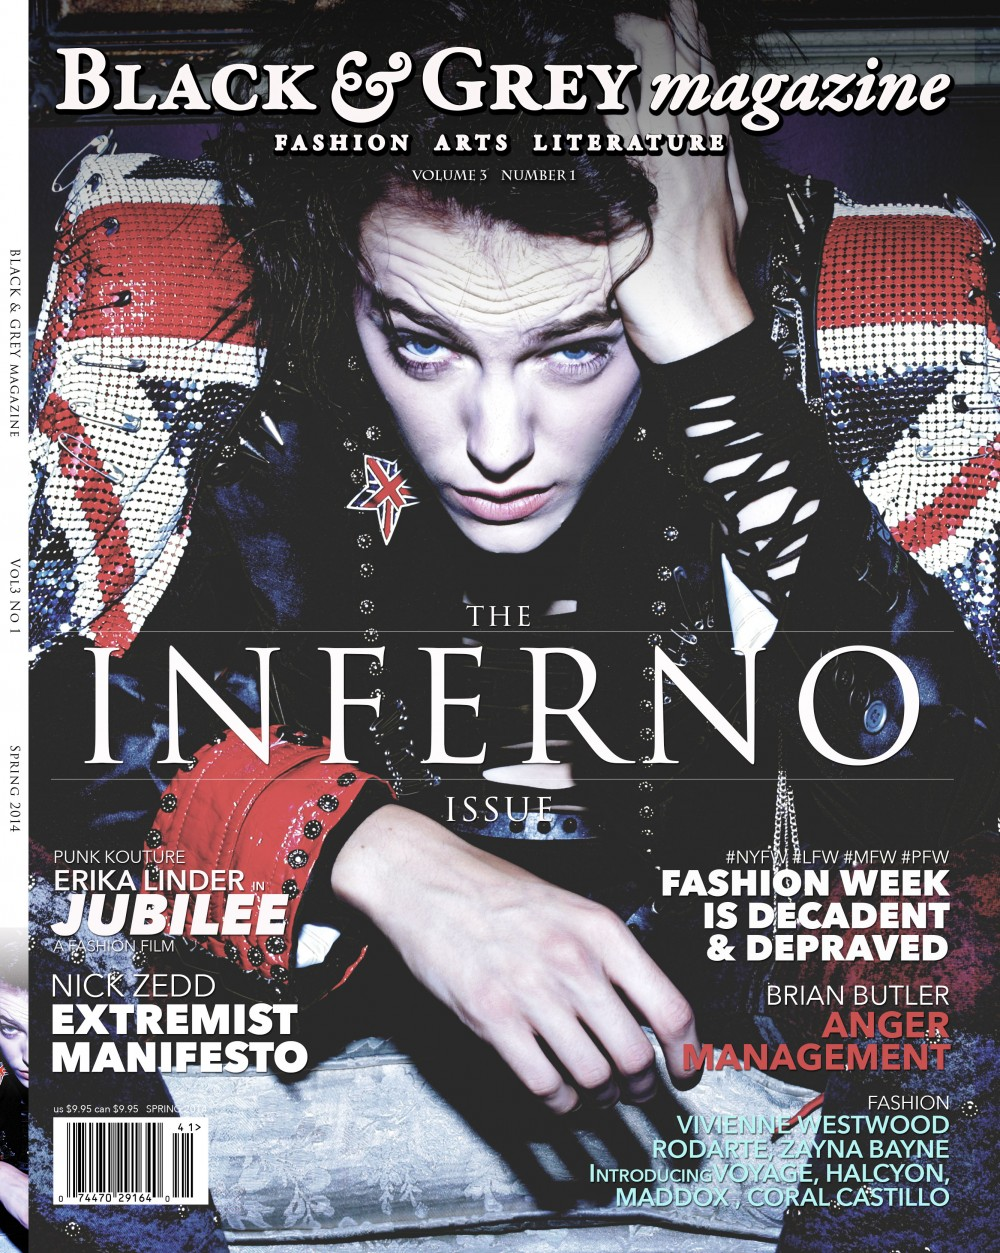 The INFERNO Issue